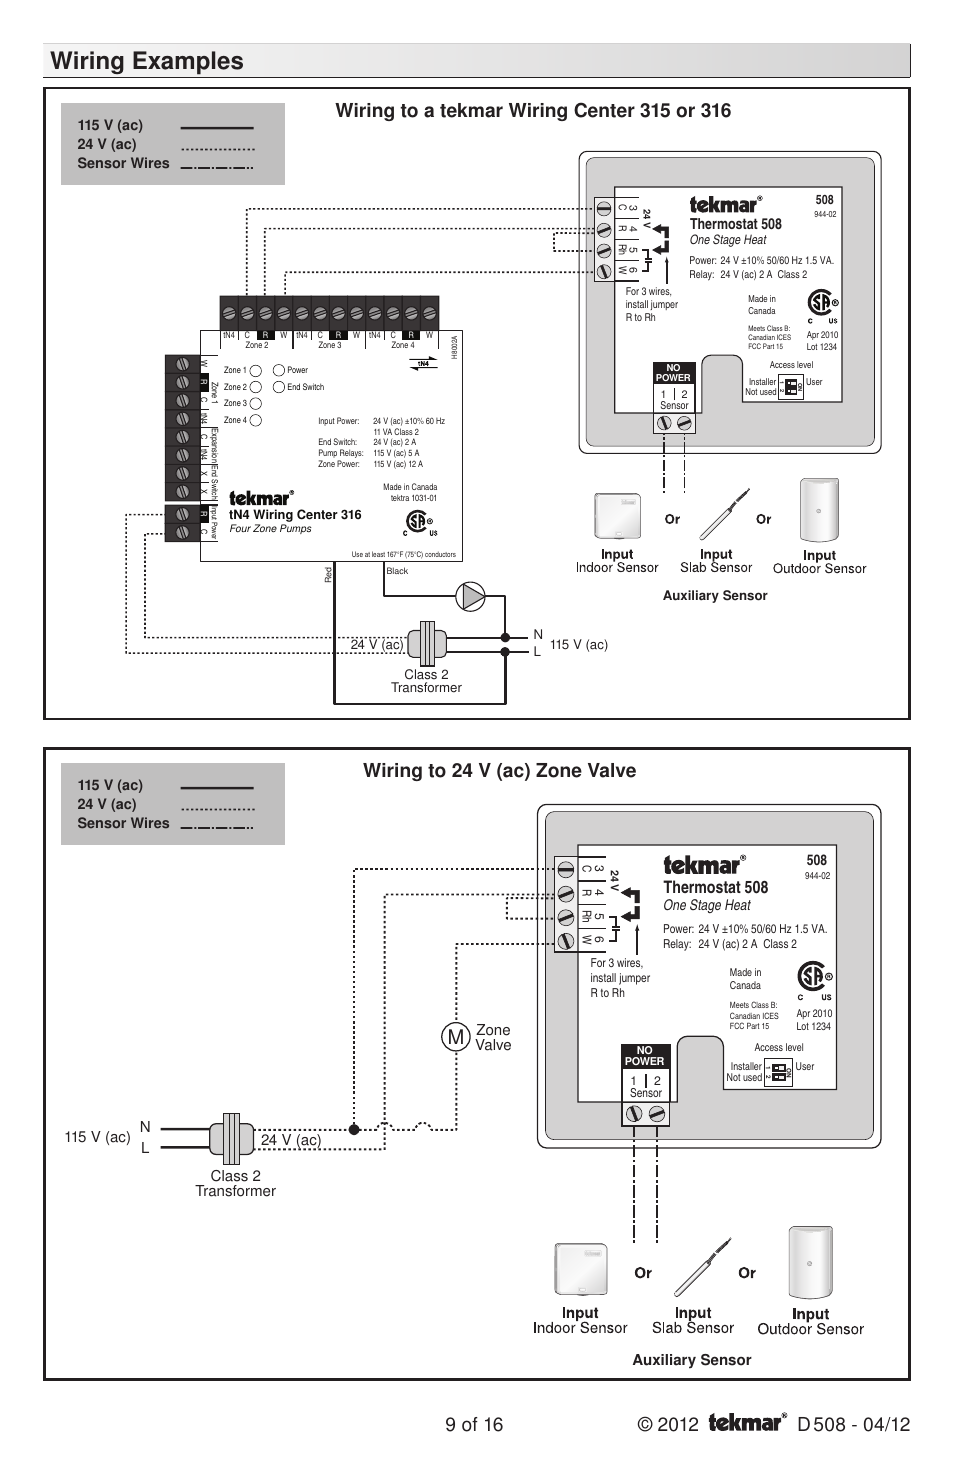 Tekmar Wiring Diagram Circuit Schematic Johnson Controls Thermostat Examples 508 Zone Valve 509 Switch